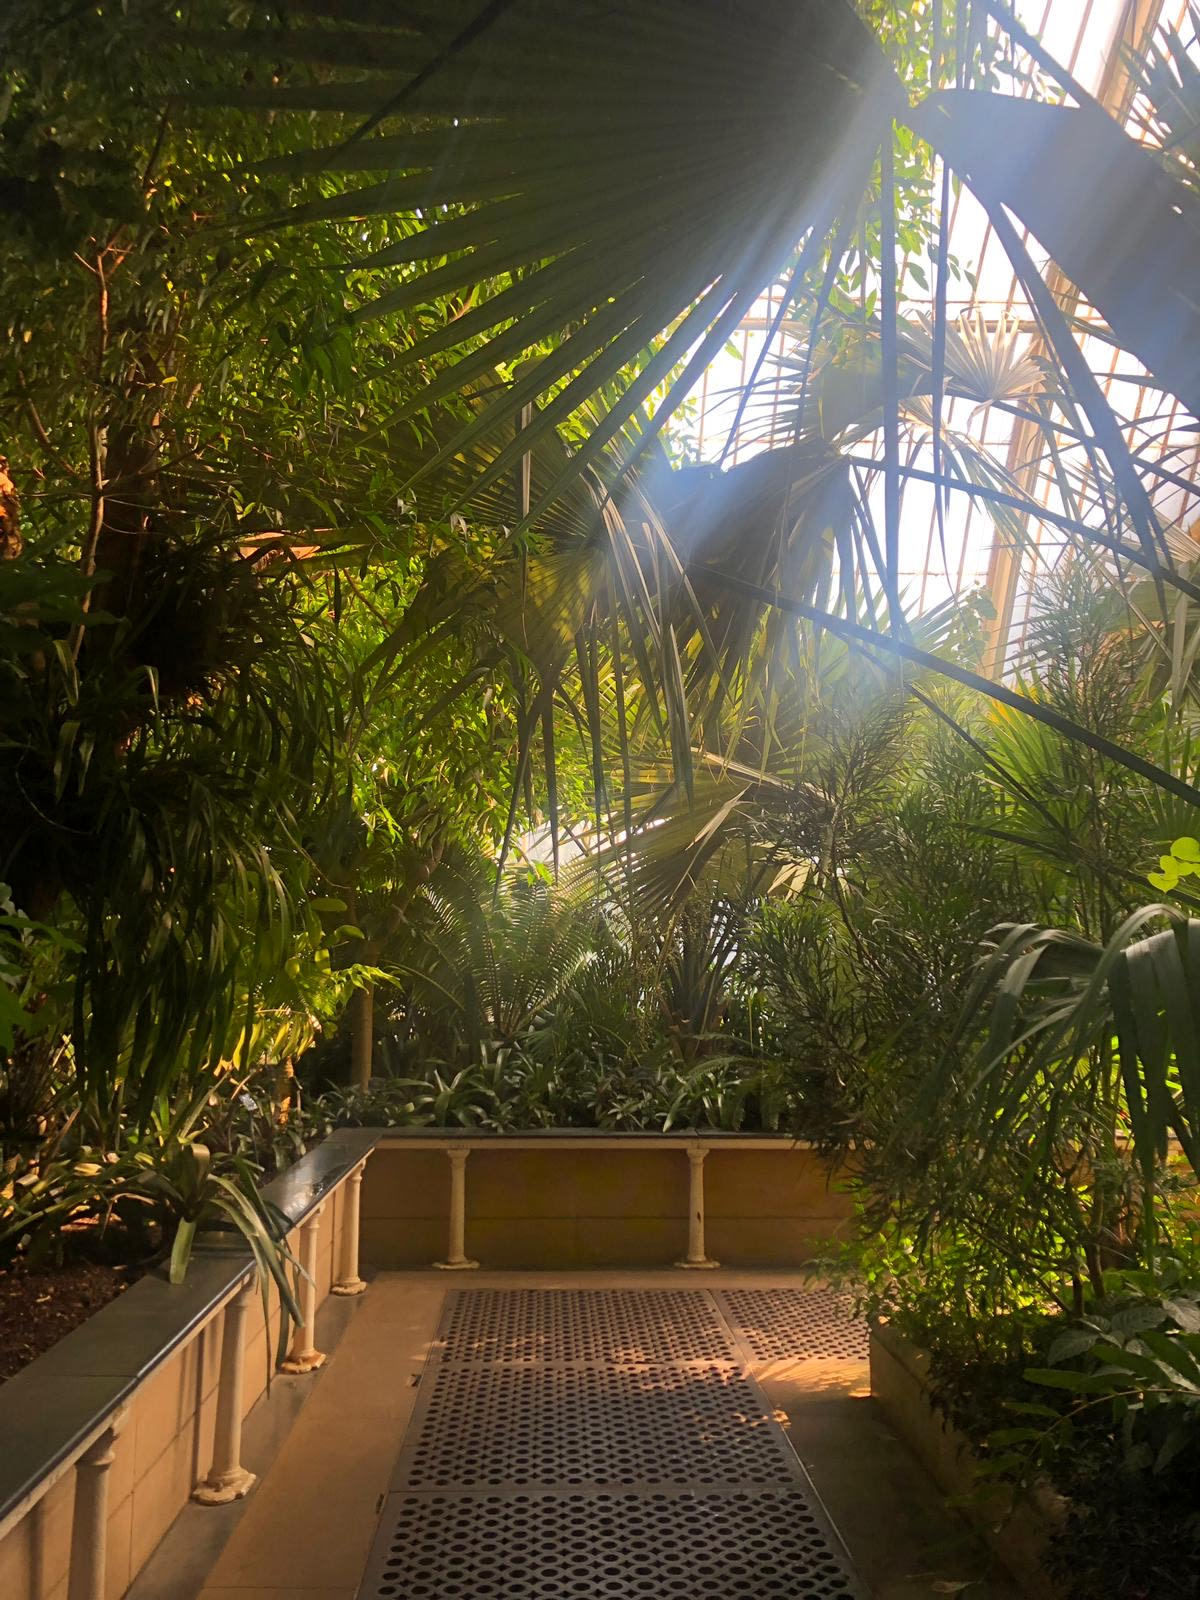 All the jungle vibes!